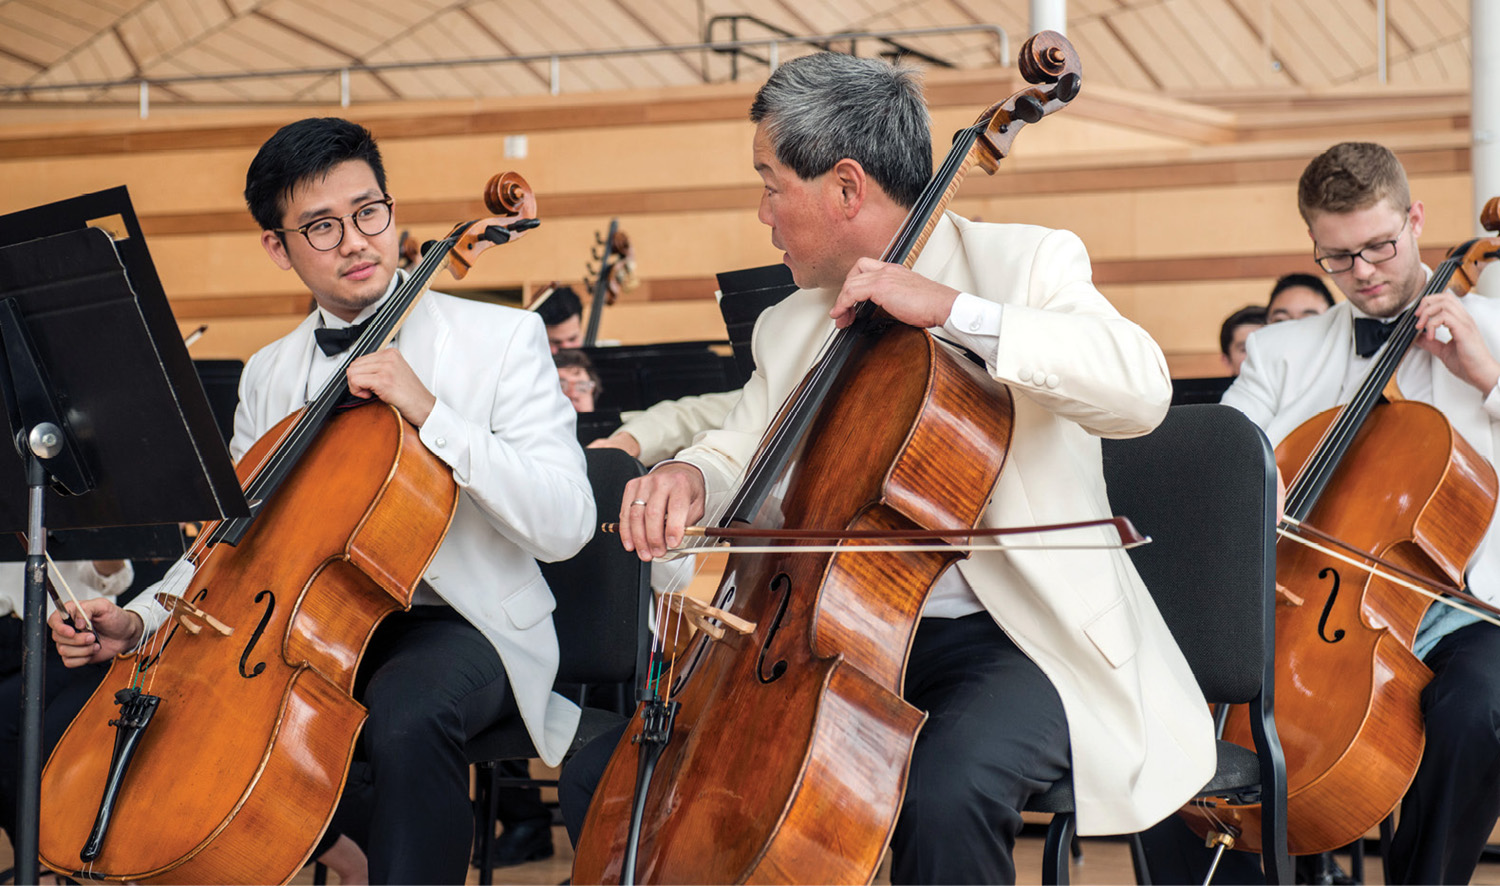 Students play alongside faculty in this side-by-side concert at the Aspen Music Festival. Photo by Alex Irvin